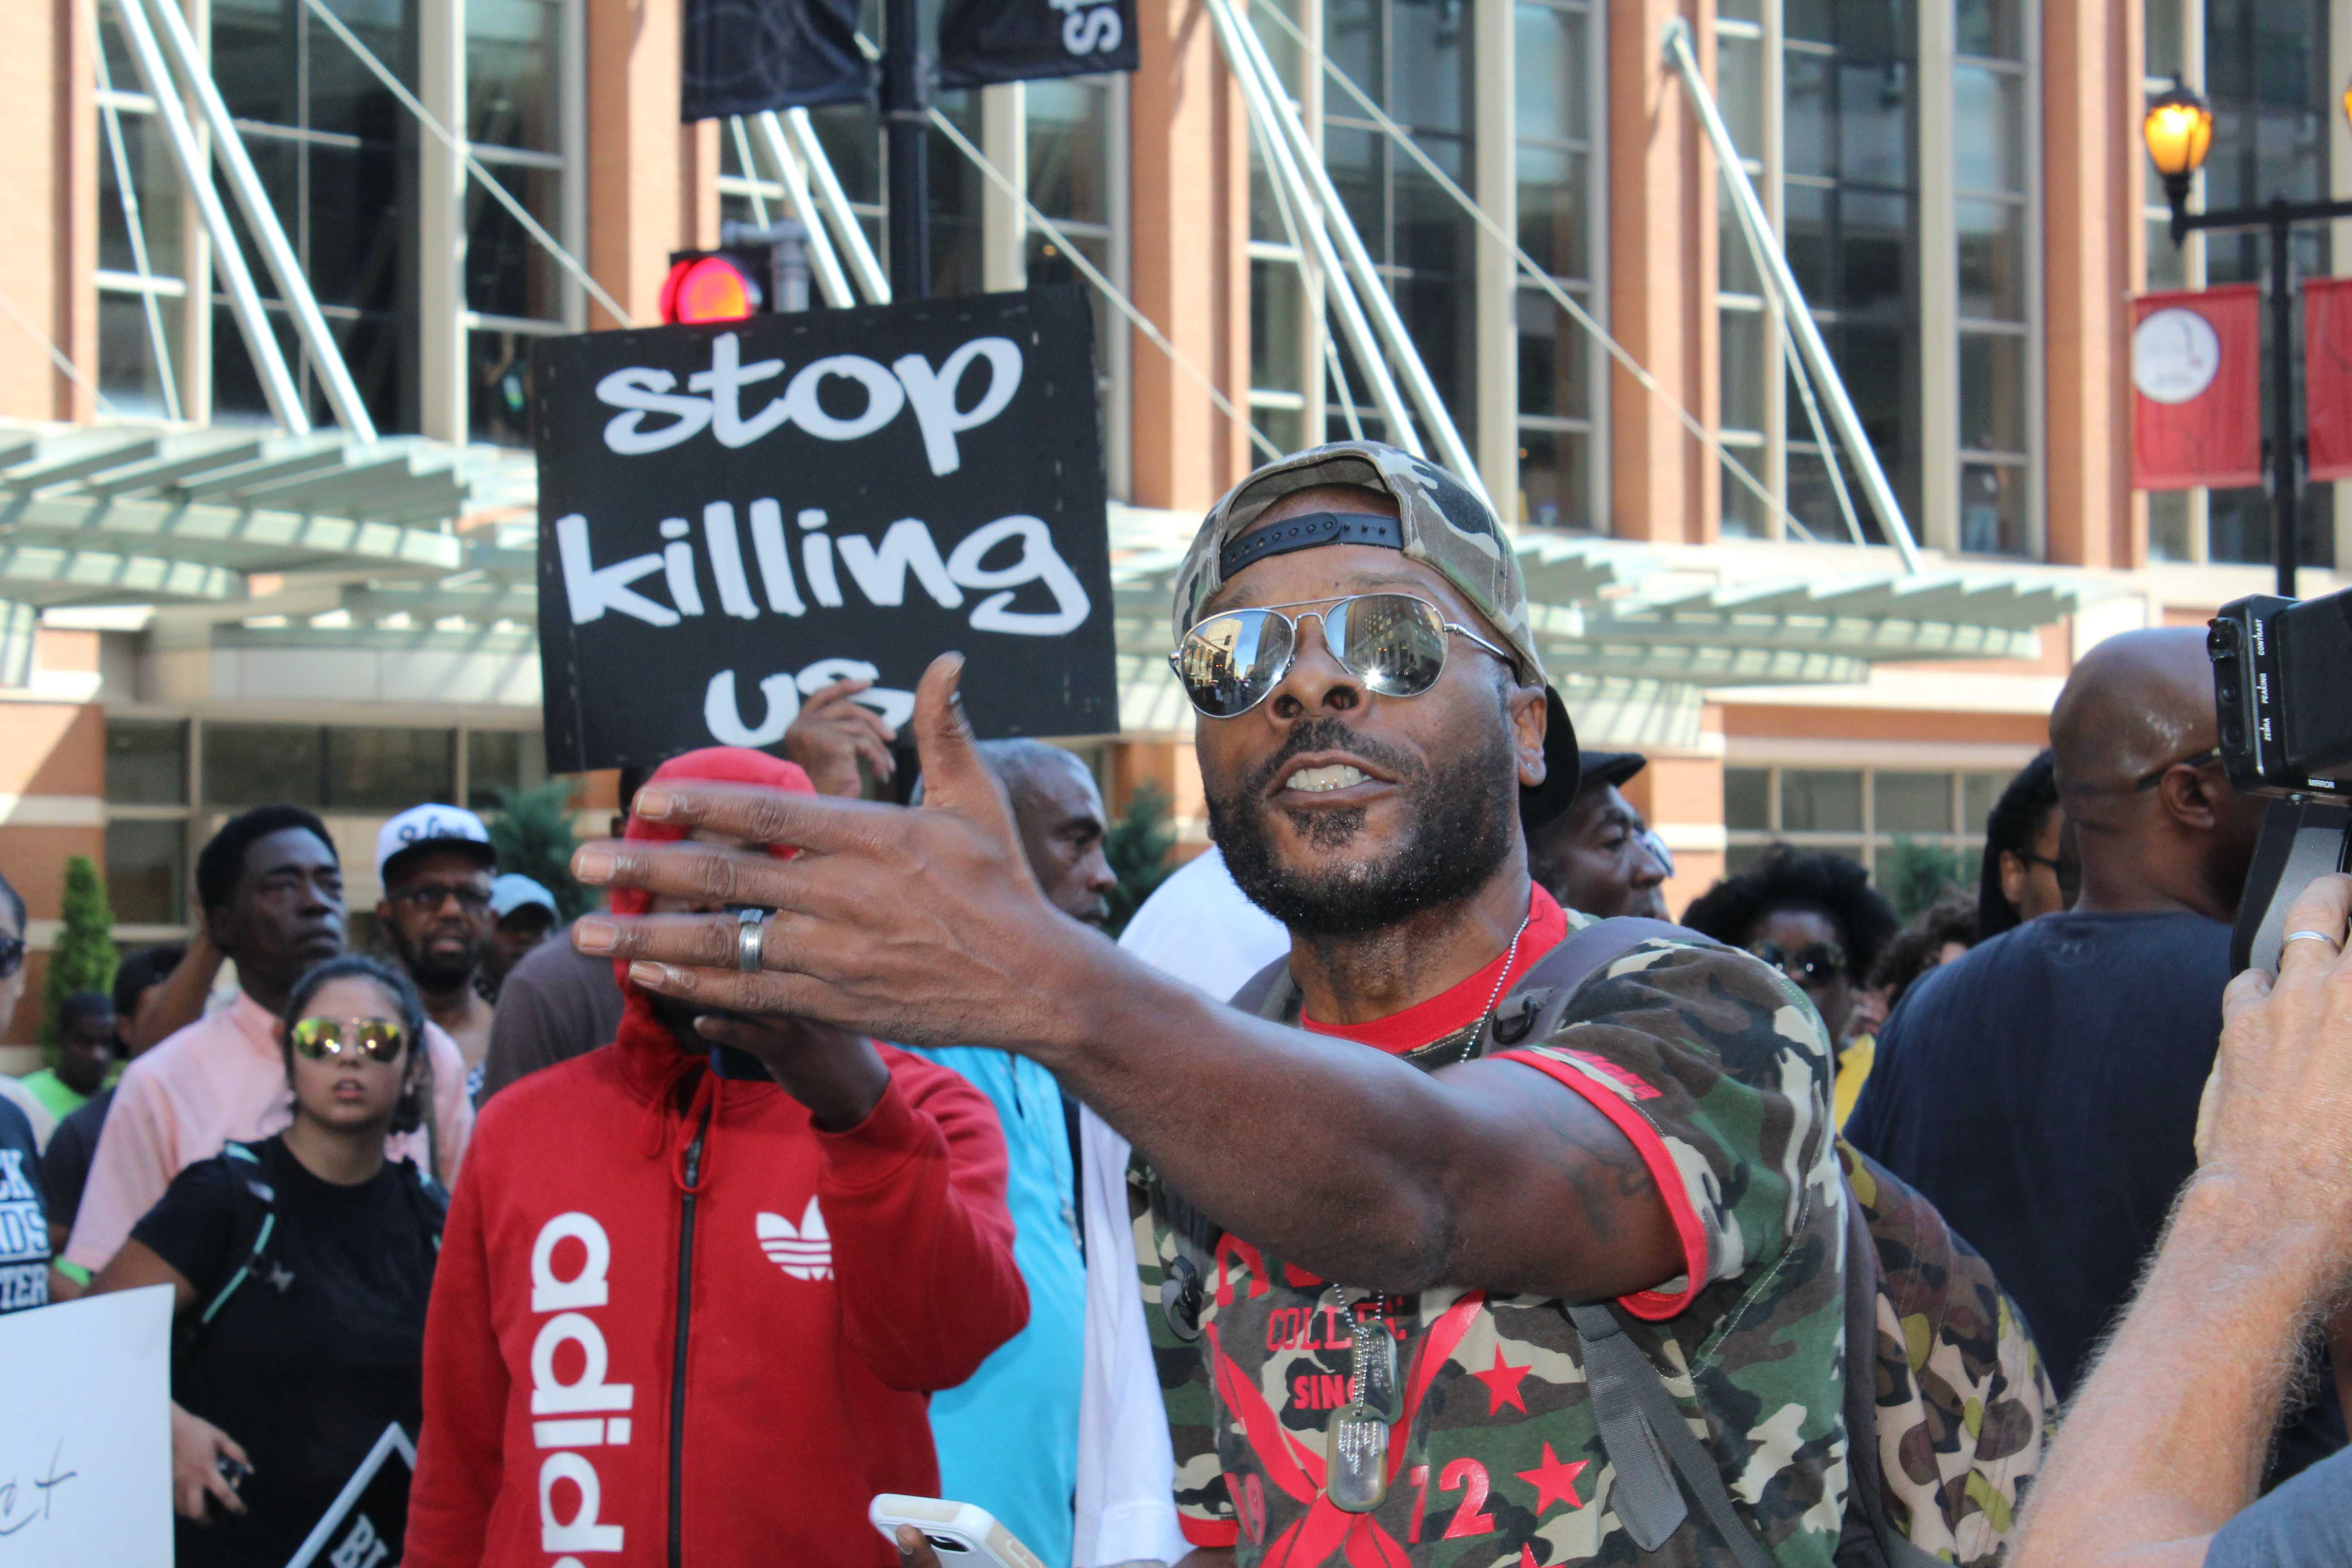 """Left: Protester Kevin Nevels speaks loudly about personal encounters with police. """"Every time a police pulls up behind me, I have to grab my steering wheel. Do white people?"""""""